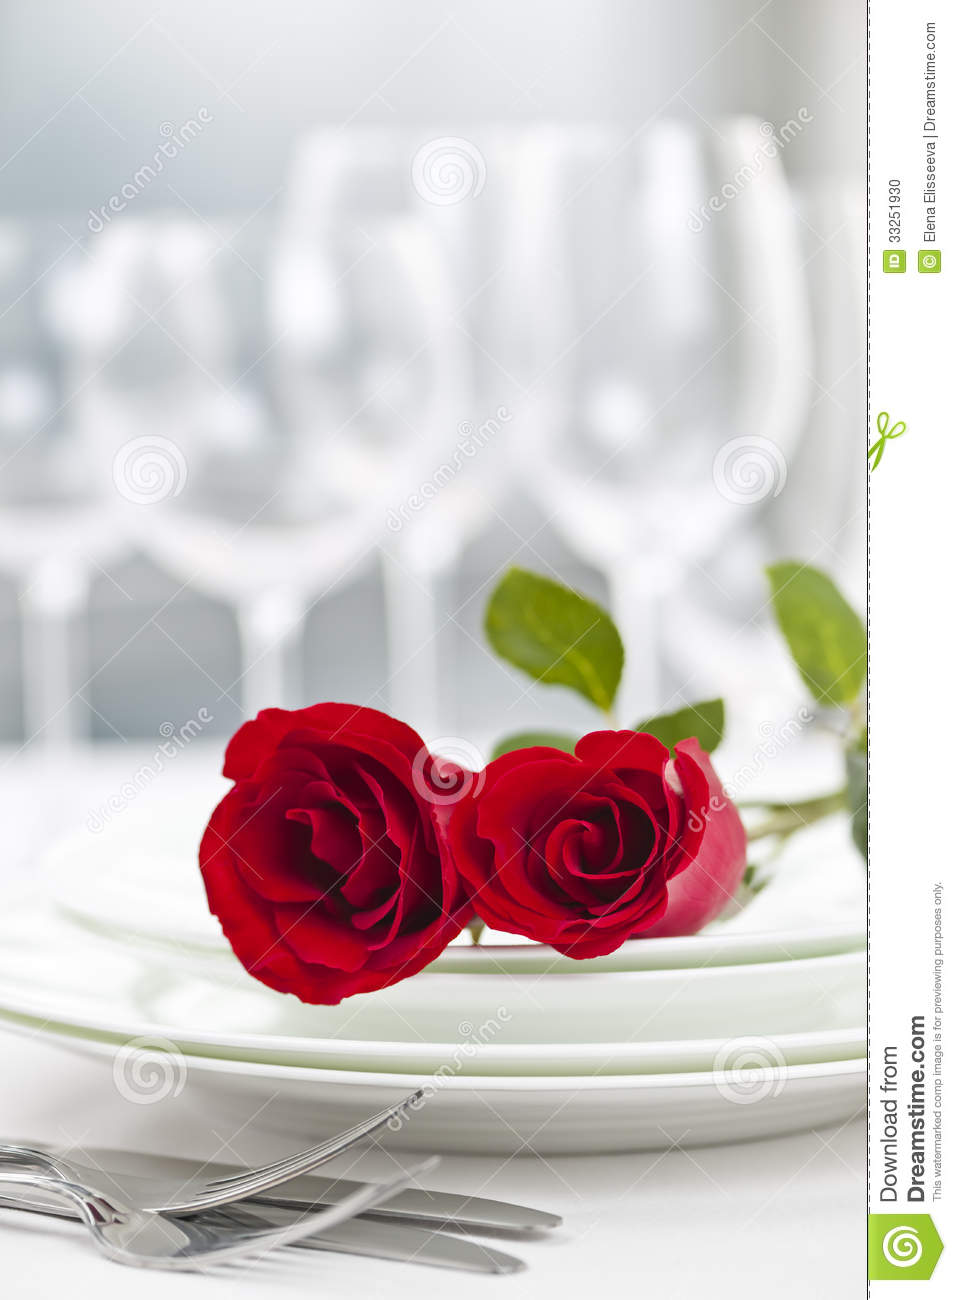 Dinner table setting ideas romantic dinner table setting ideas - Romantic Restaurant Dinner Setting Stock Photo Image